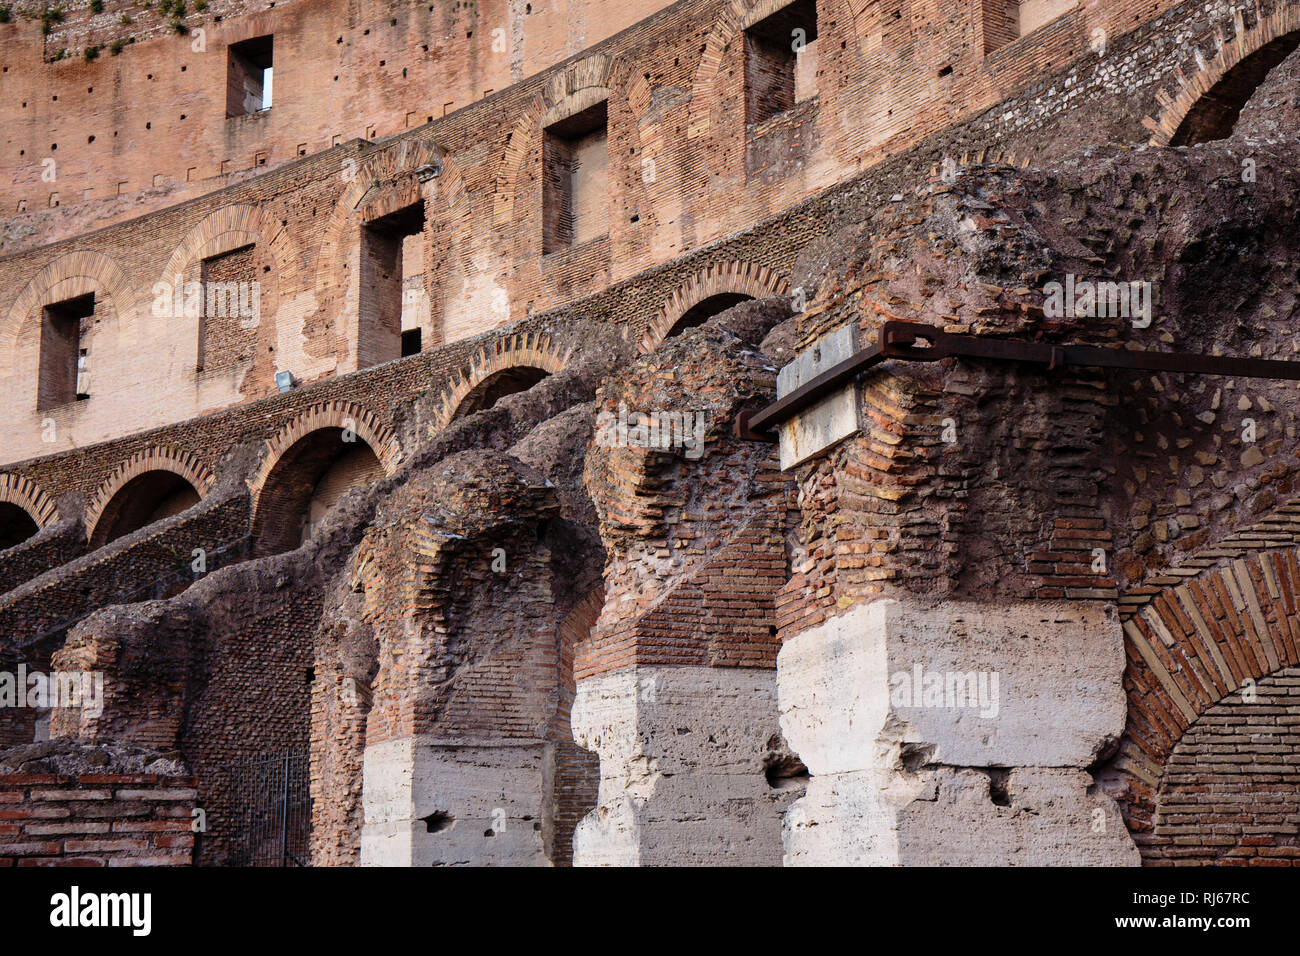 Europa, Italien, Latium, Rom, Architekturdetail im Kolosseum Stock Photo